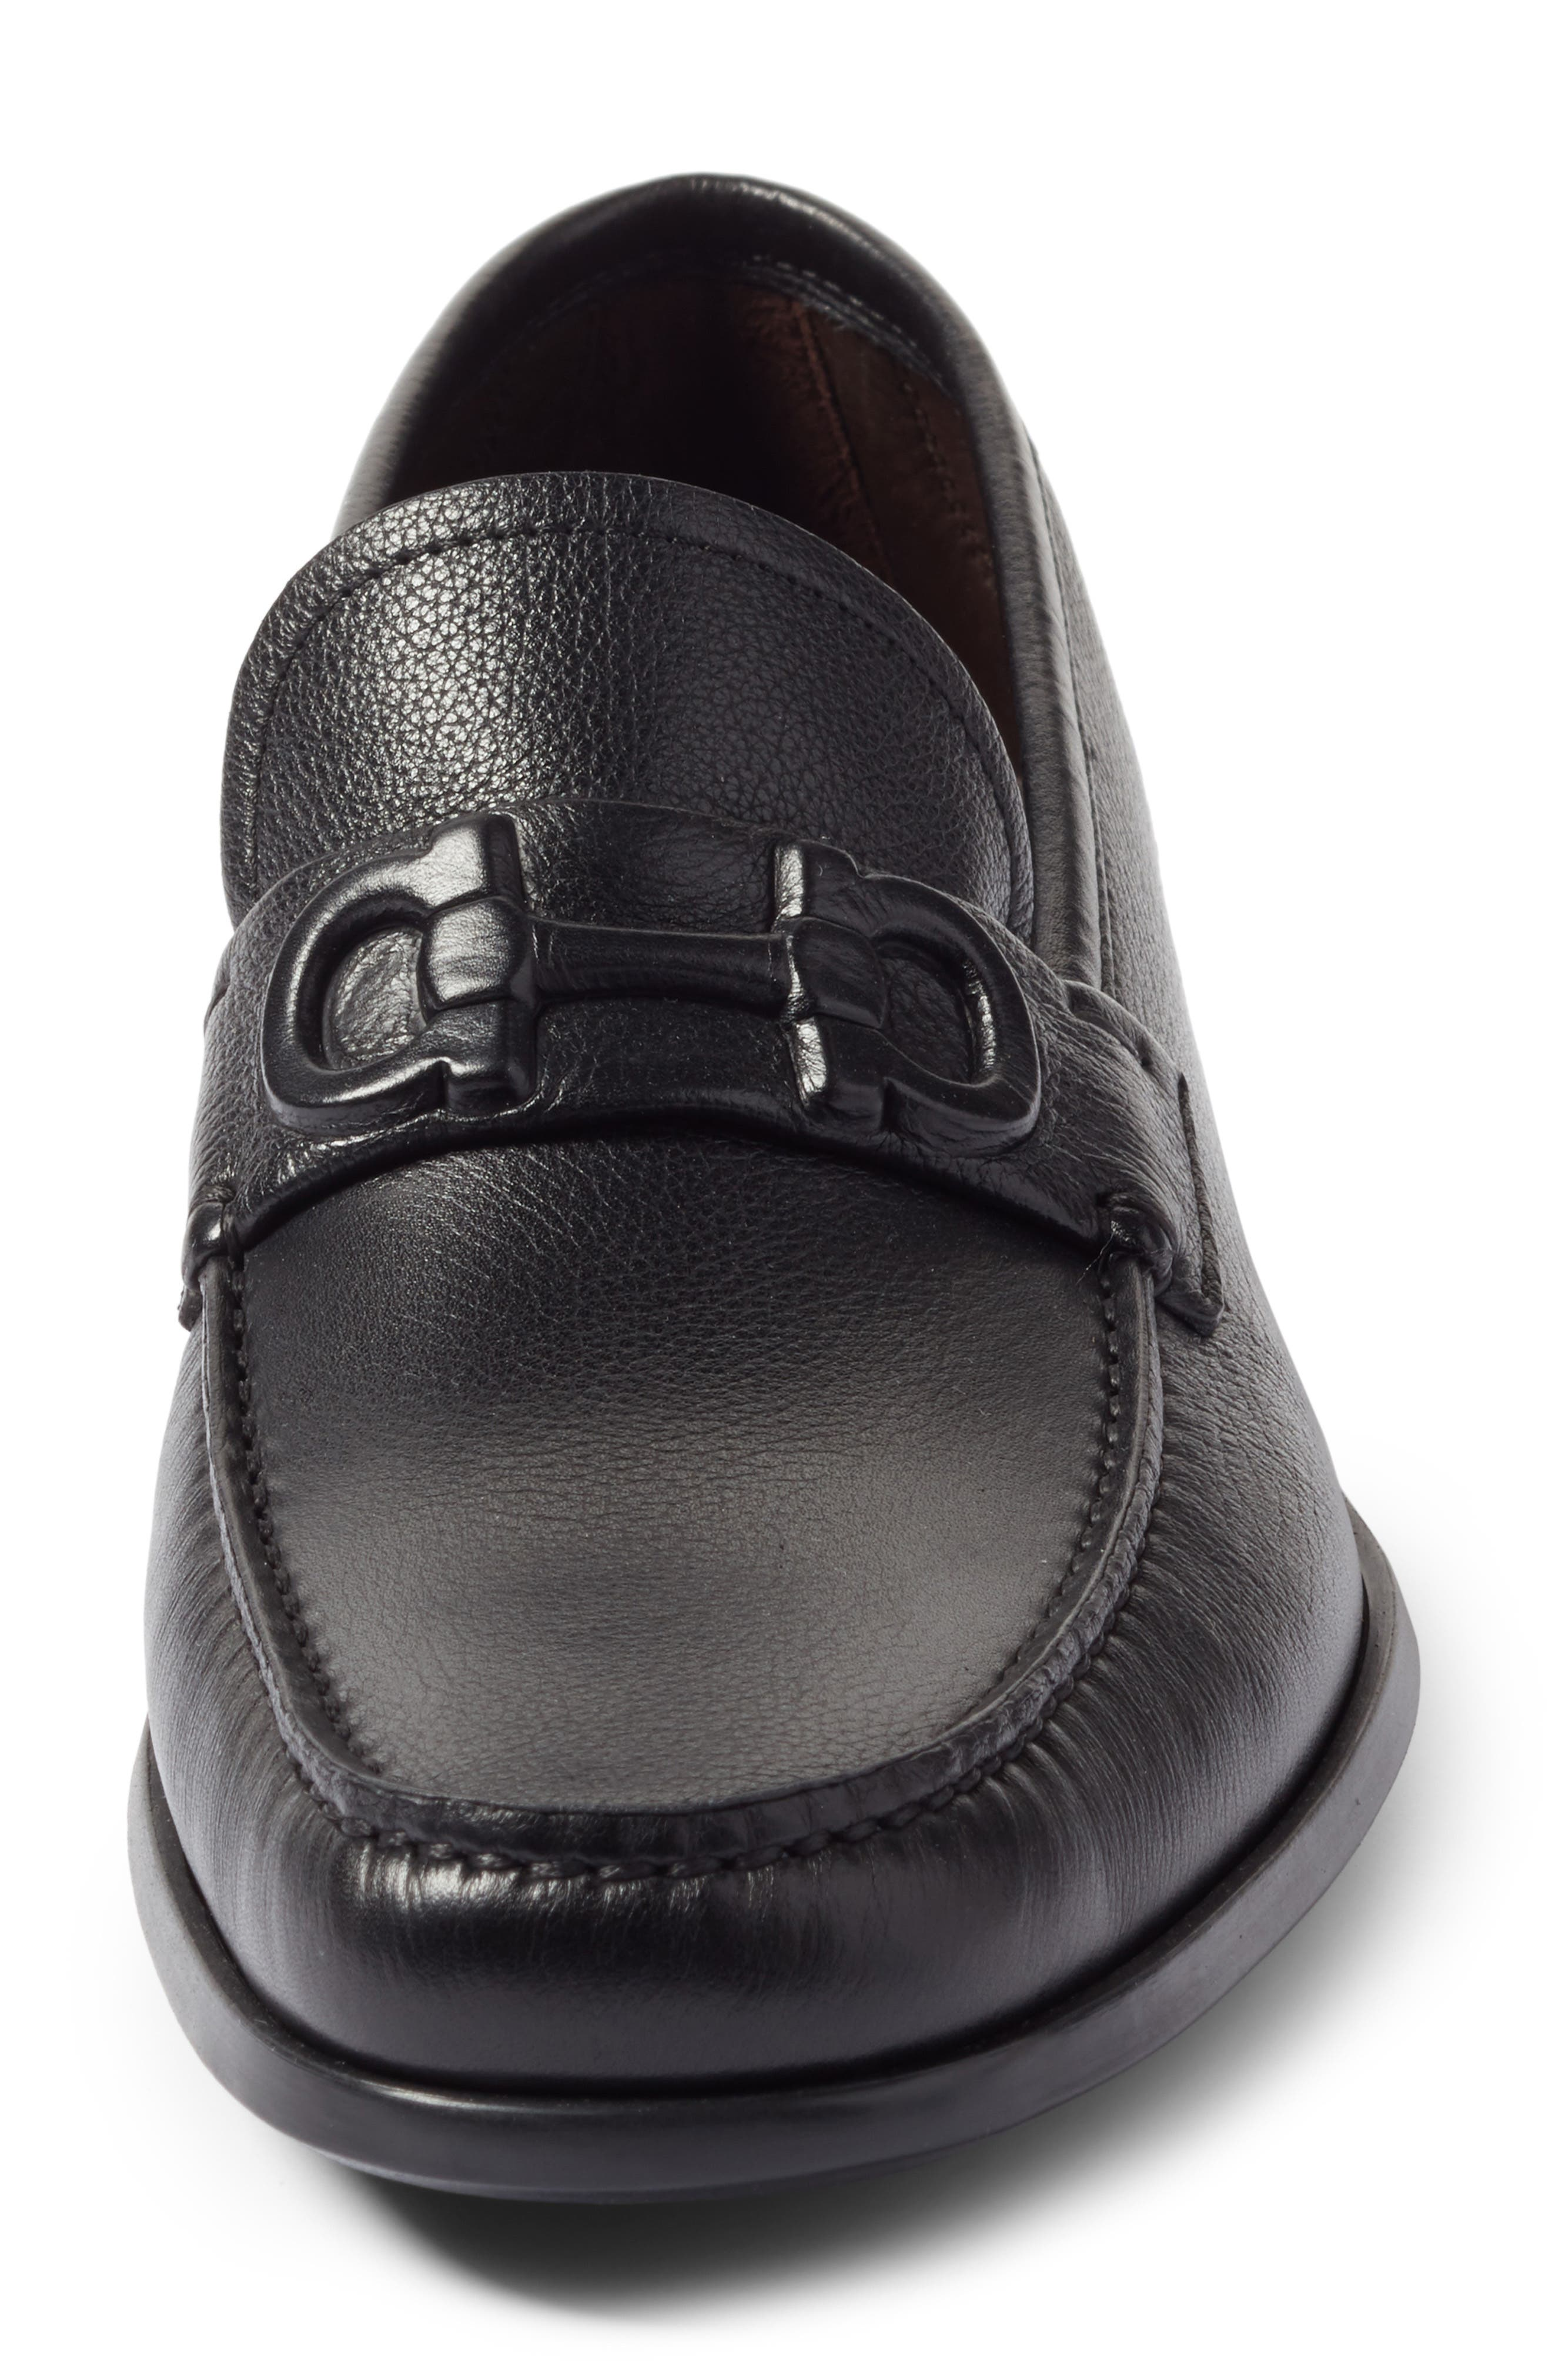 Bit Loafer,                             Alternate thumbnail 4, color,                             Nero Leather